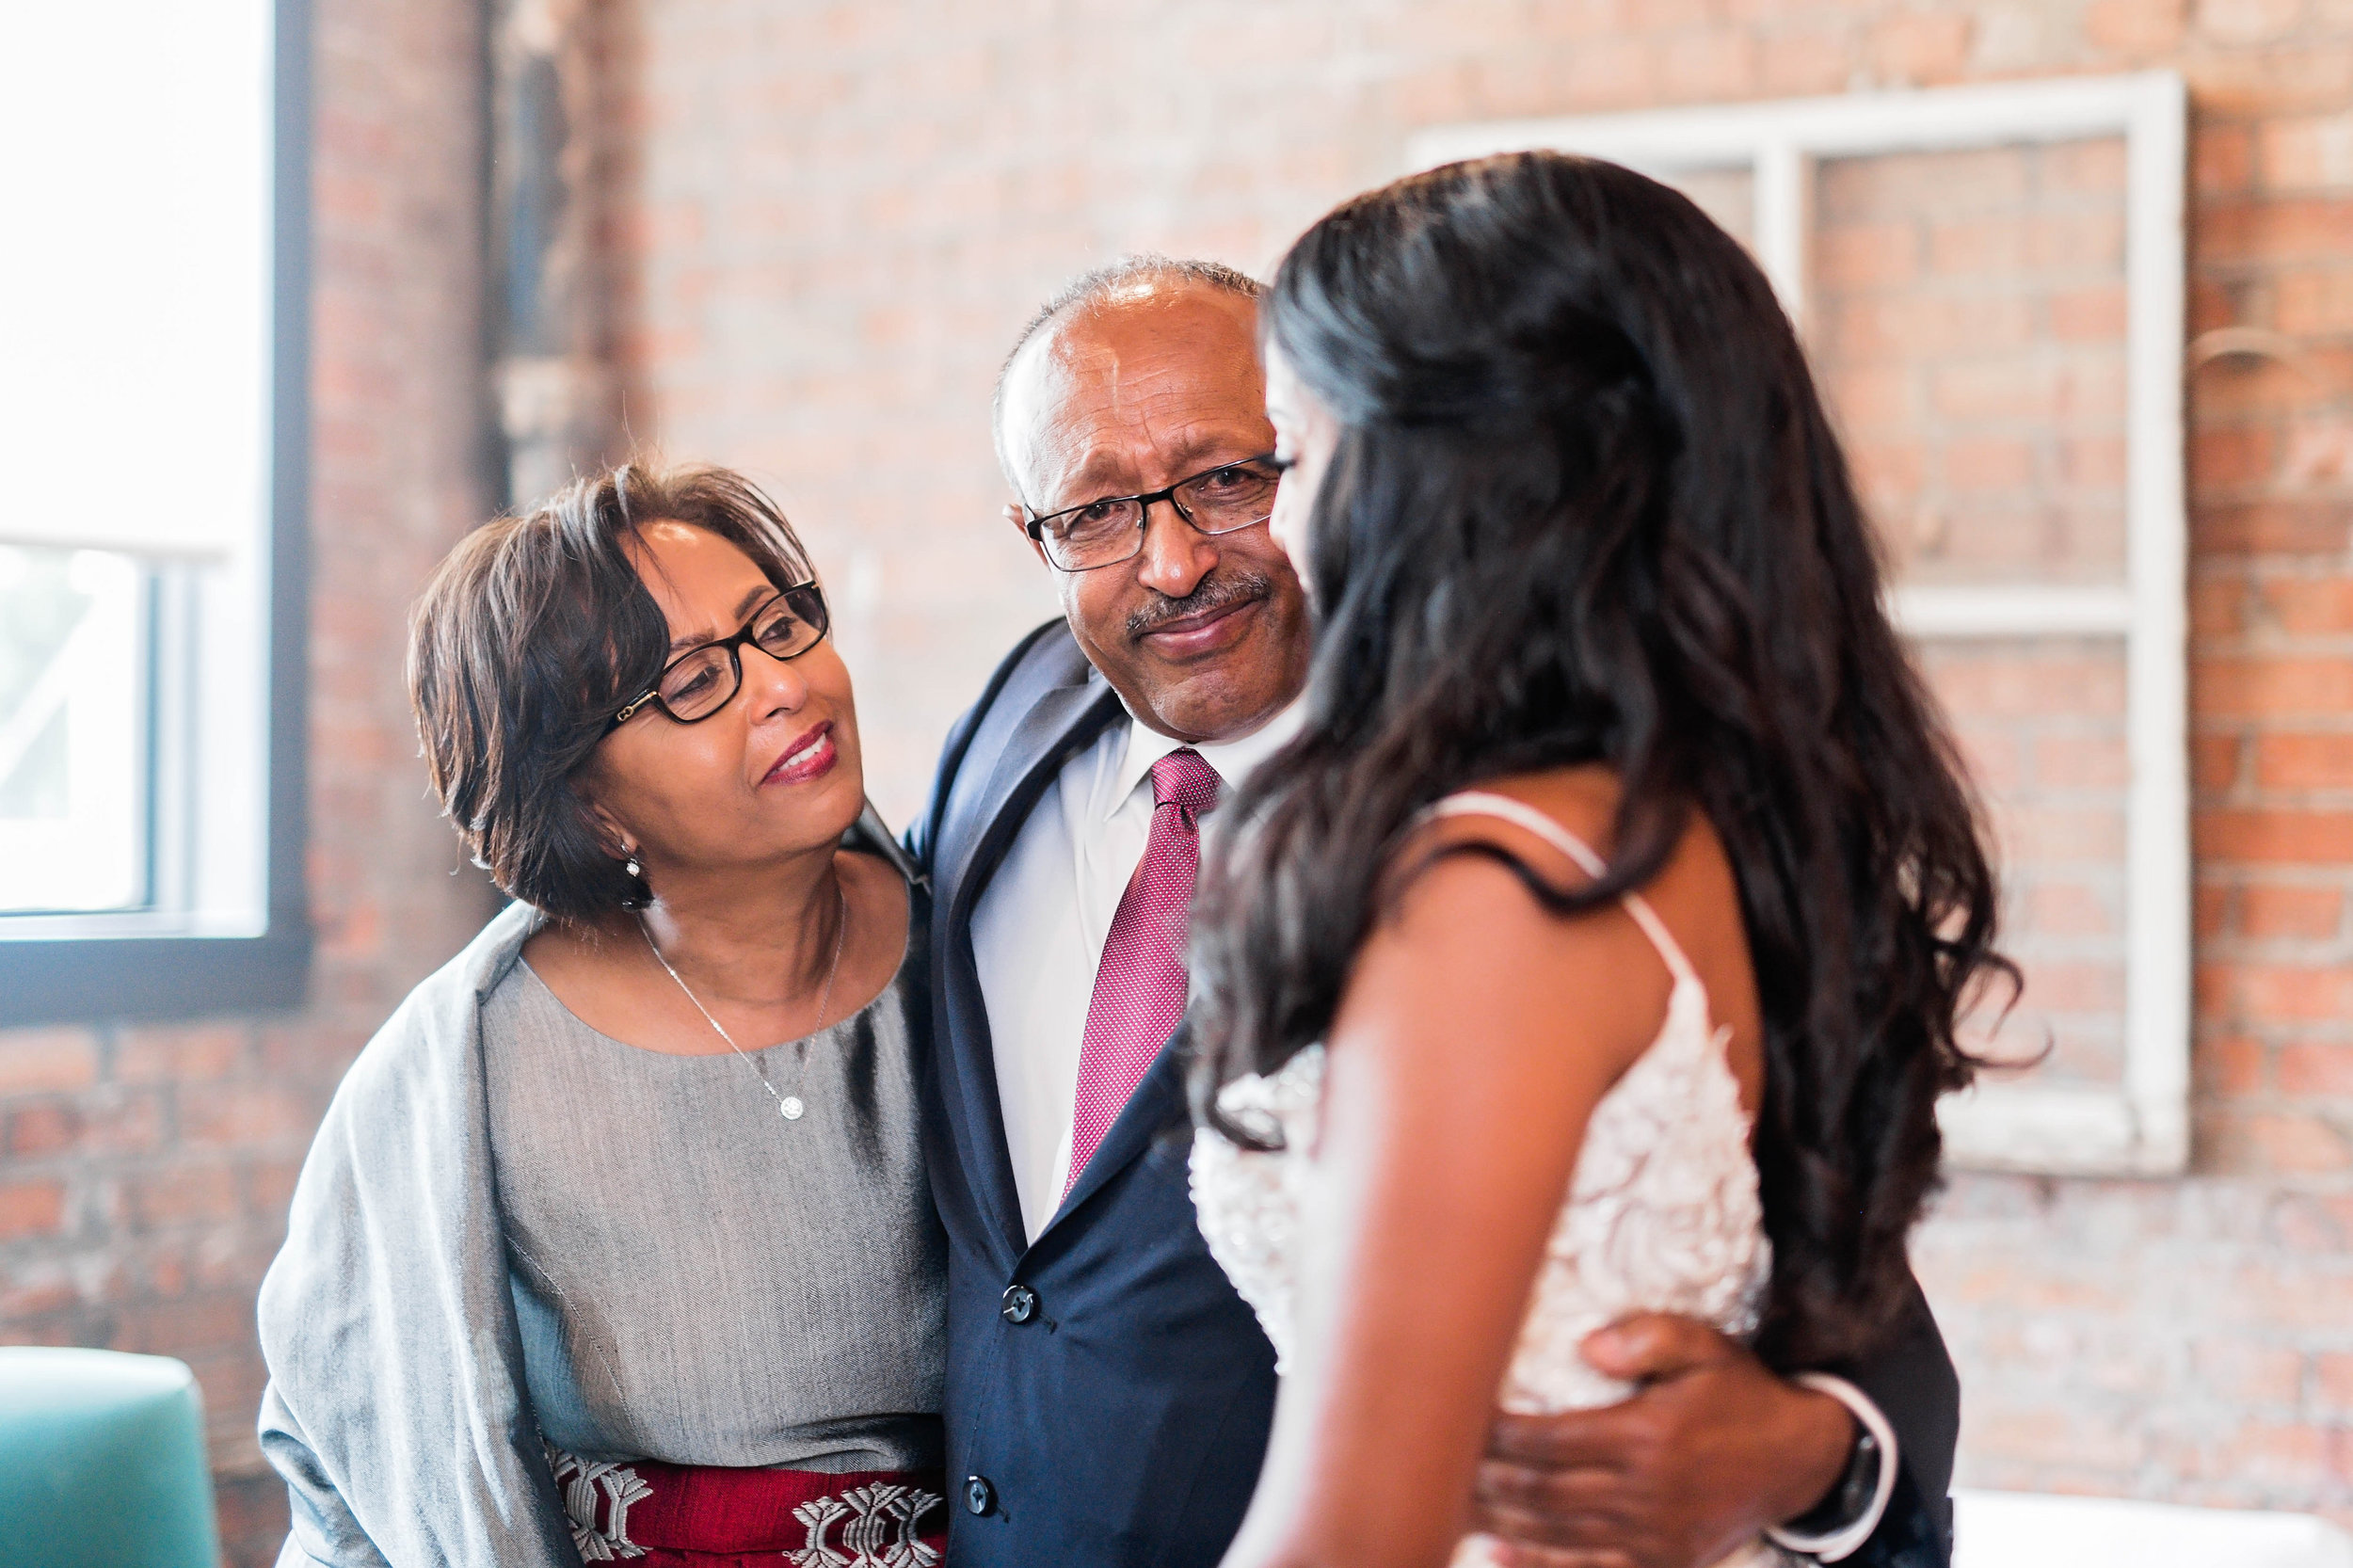 Dallas Wedding- Pharris Photography- Getting Ready- Sophie + Kellen -Bride and Parents